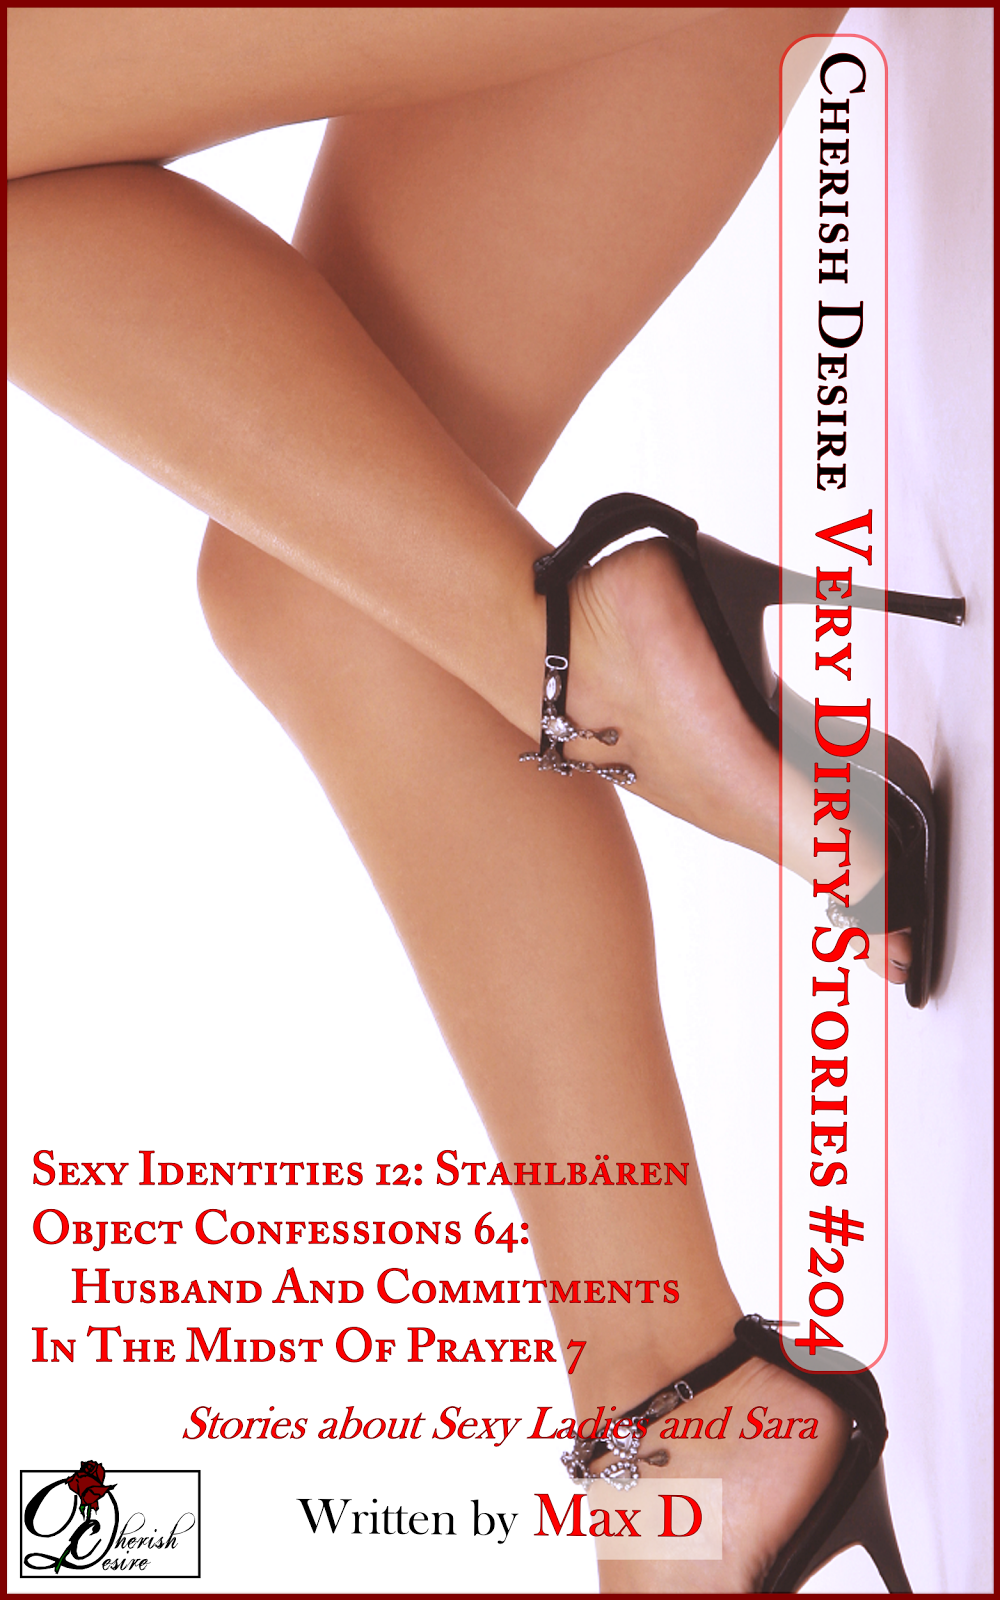 Cherish Desire: Very Dirty Stories #204, Max D, erotica